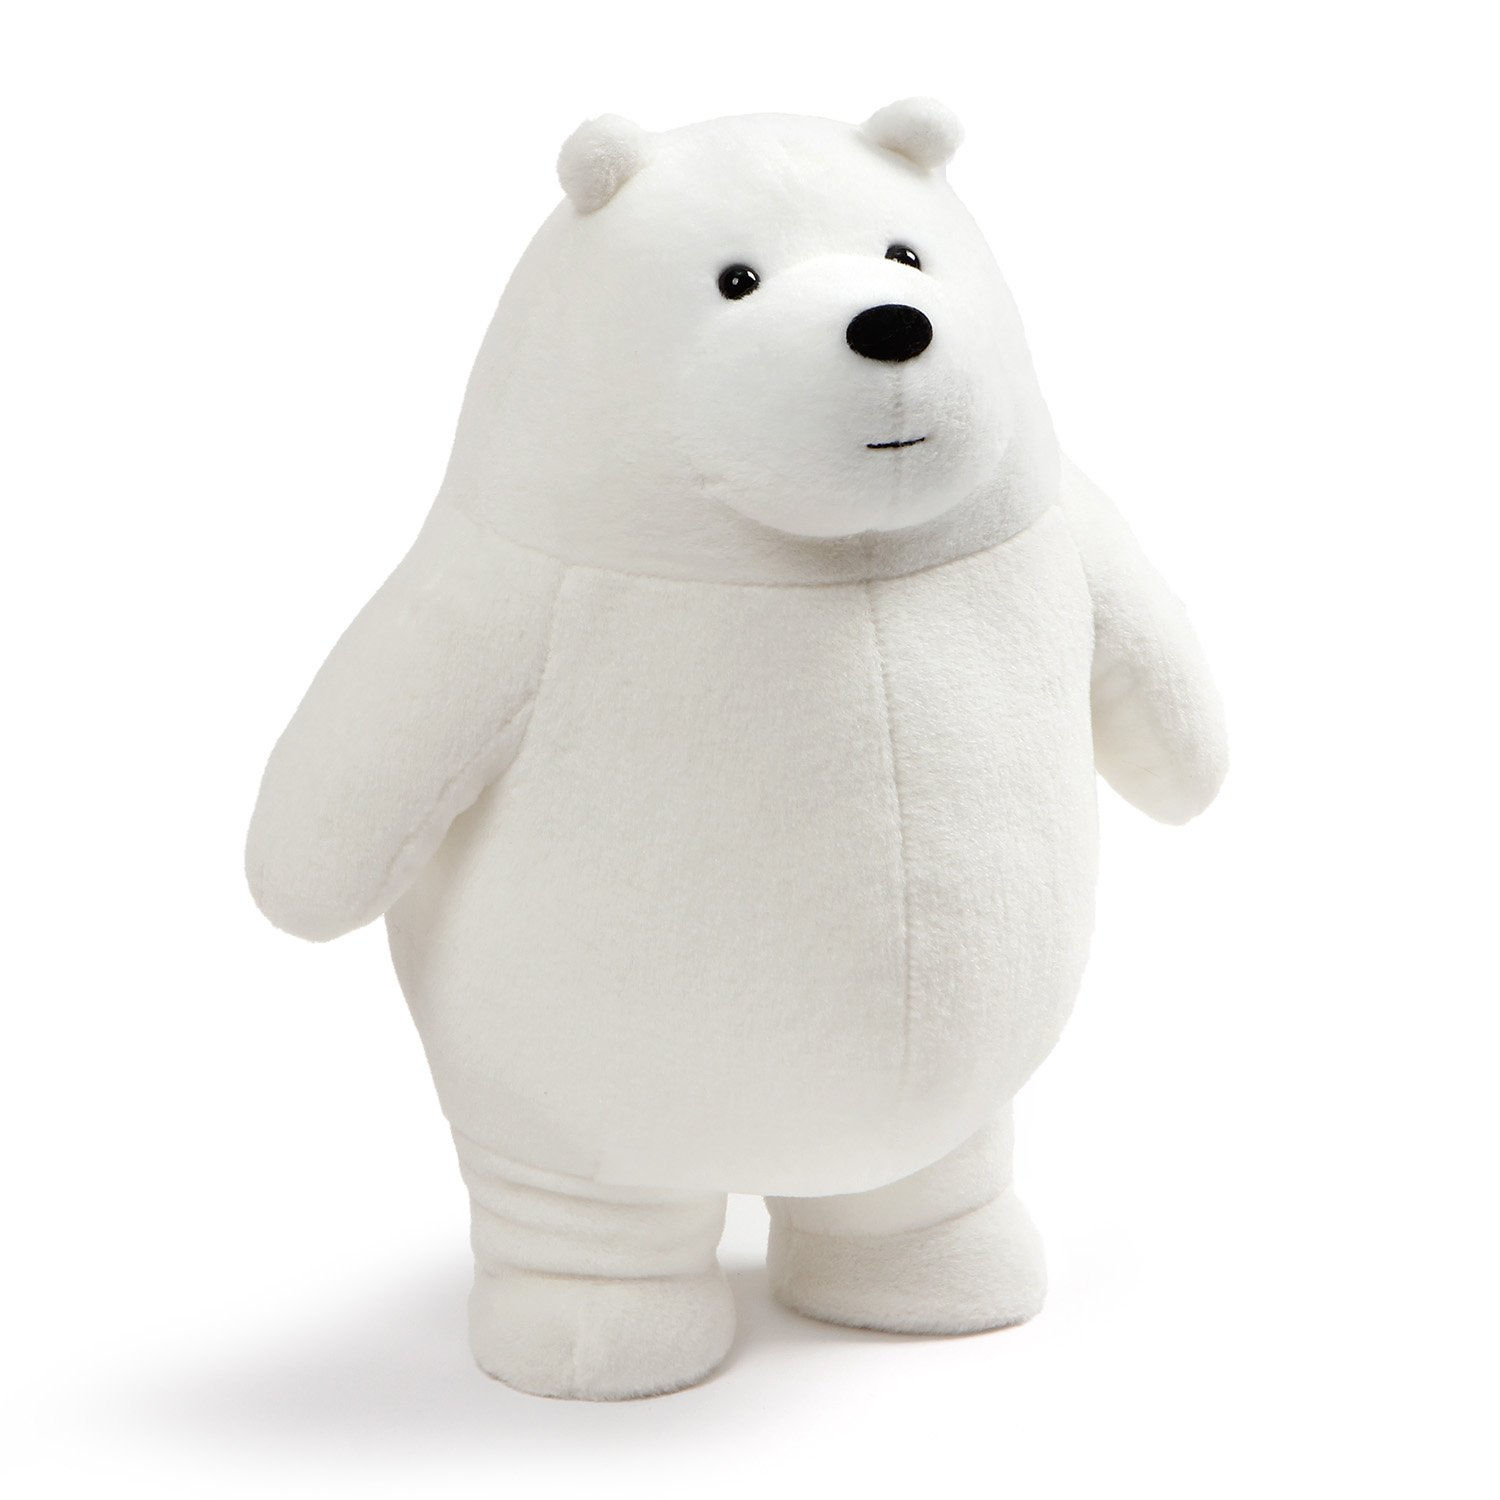 GUND 4060978 Cartoon Network We Bare Bears Standing Ice Bear Plush 11 White